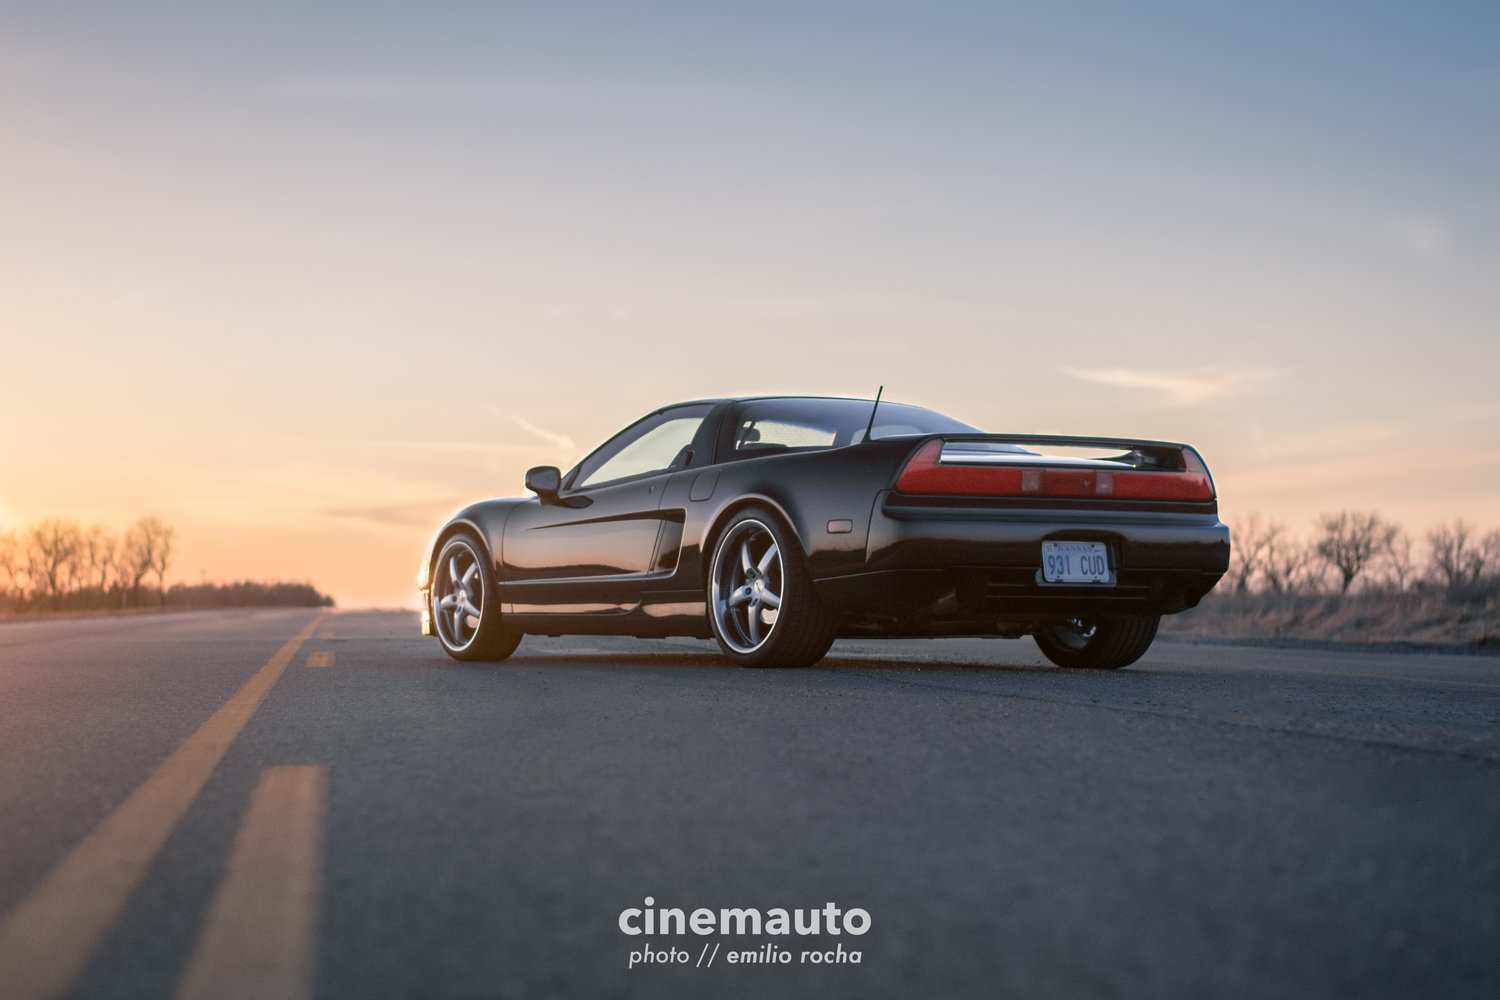 92 Acura NSX Cinemauto